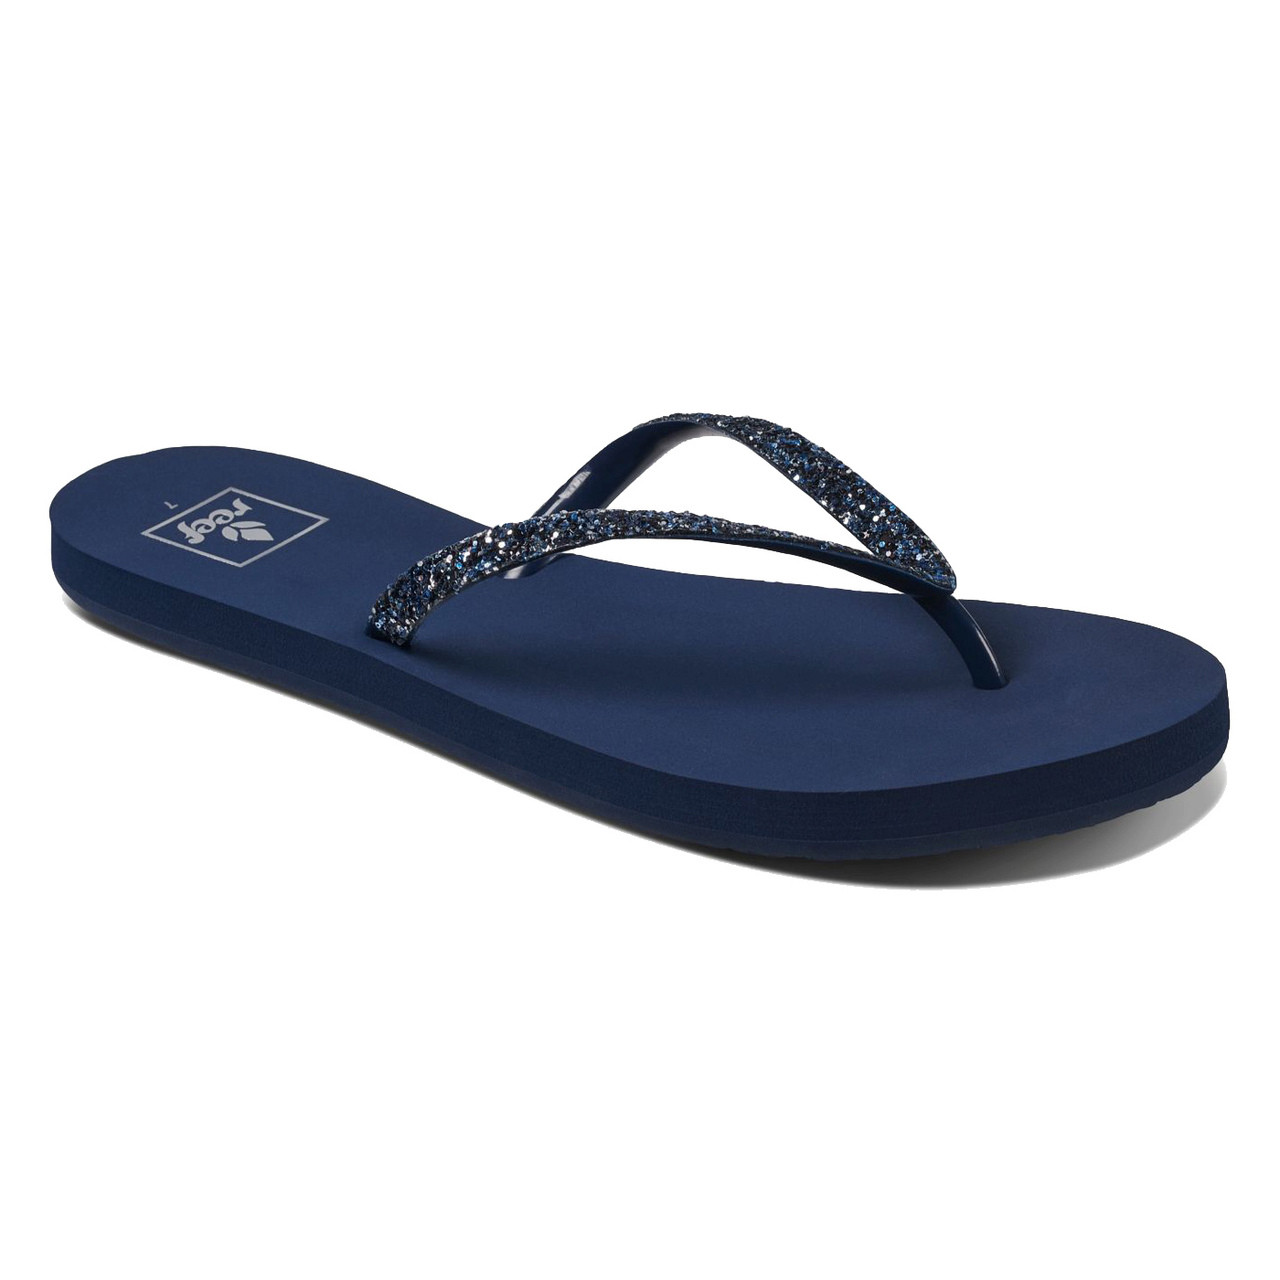 43e9d96e0301 Reef Women s Flip Flops - Stargazer - Mermaid - Surf and Dirt